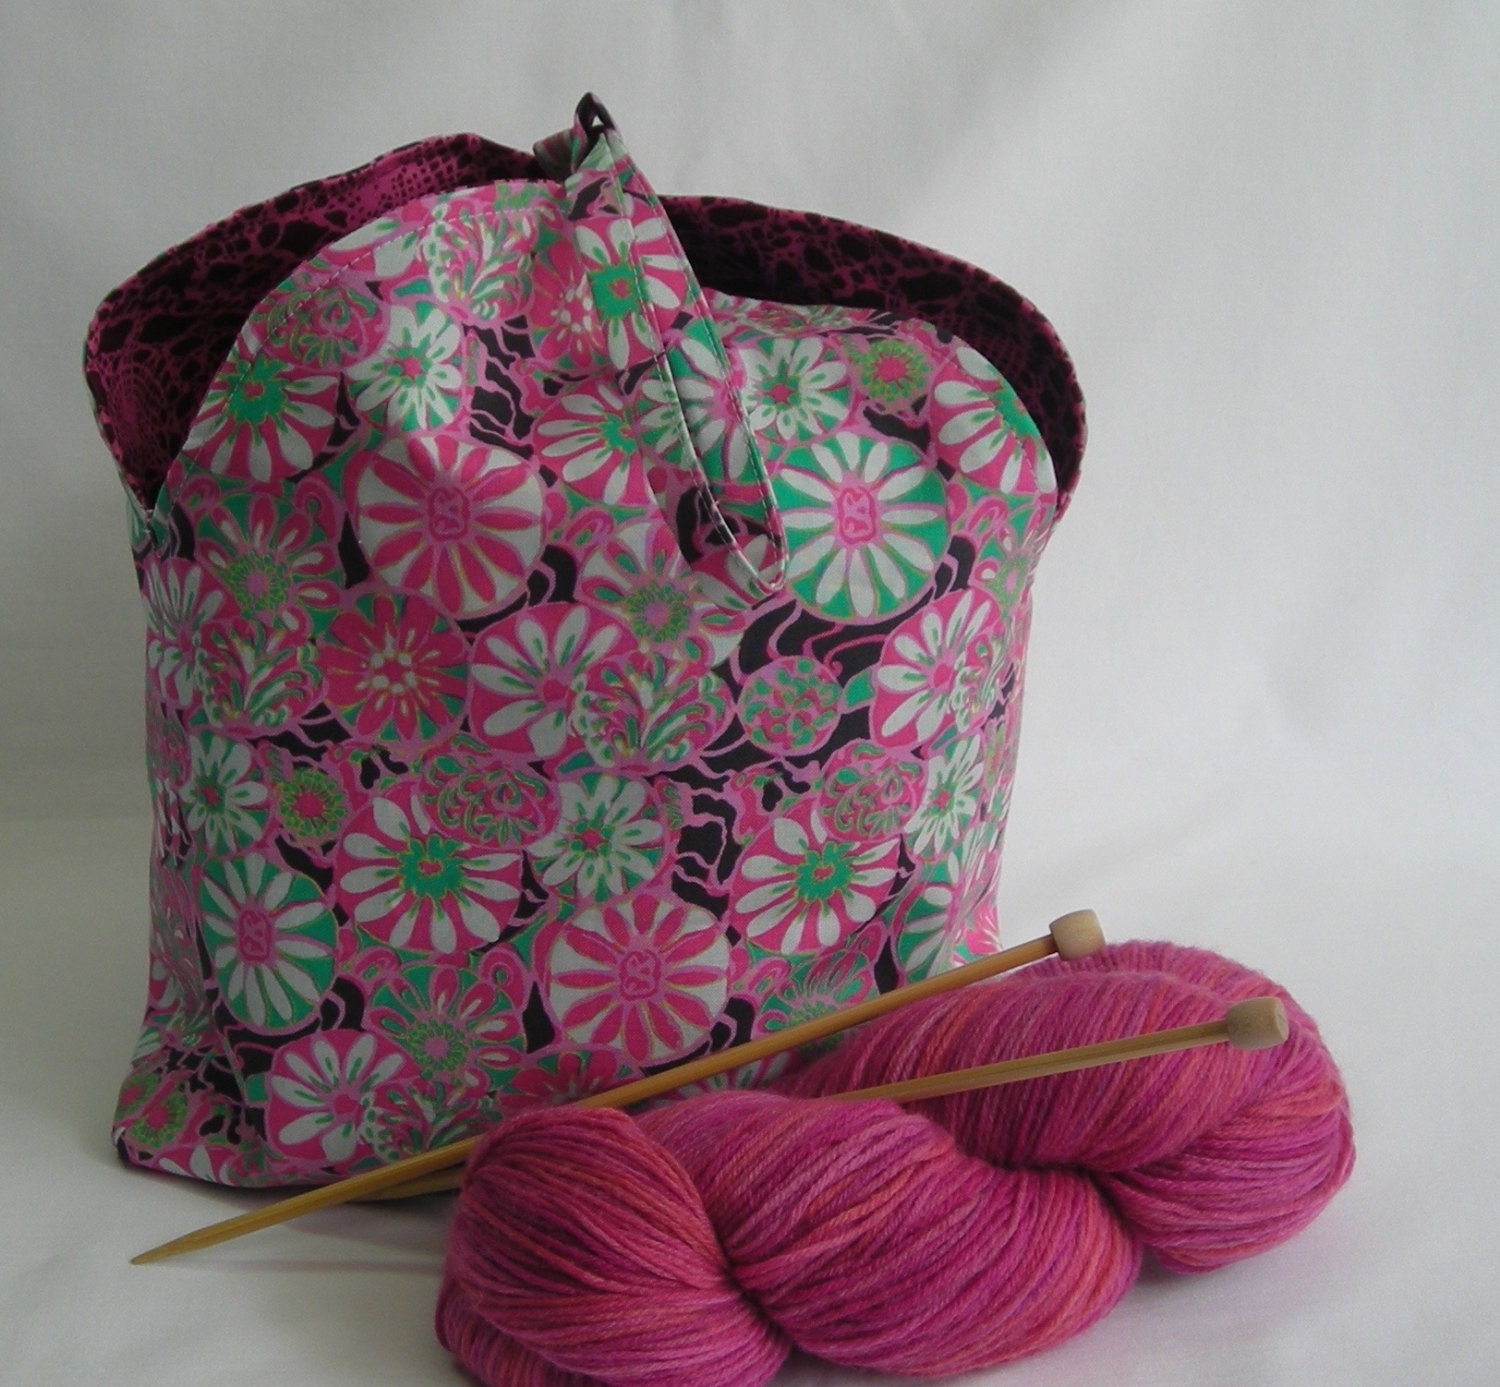 Amy Wip knitting project bag - crochet wip yarn shawl - tulip bag drawstring  wristlet pouch - amy butler true colors pink - free knitting pattern